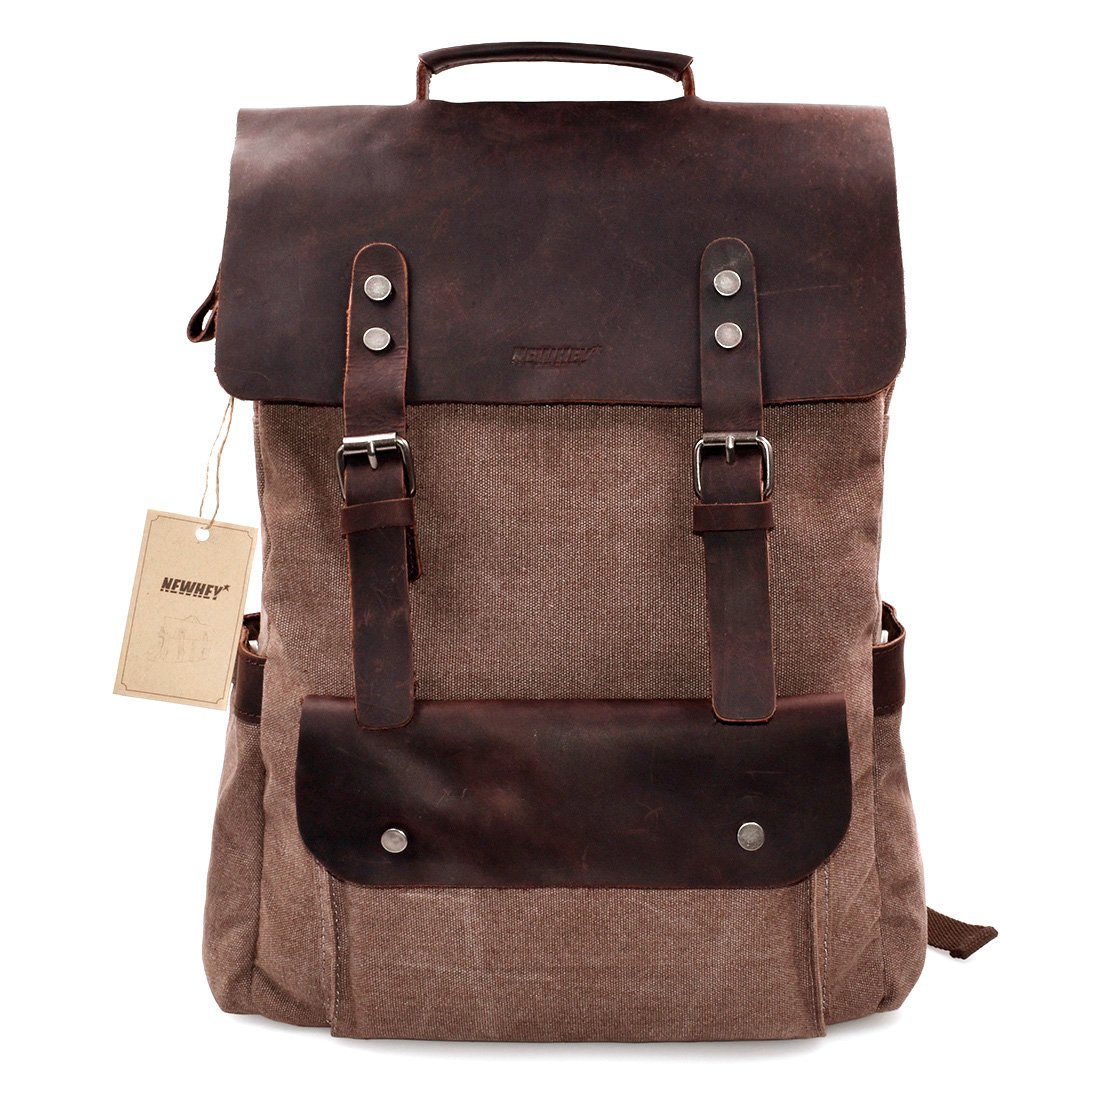 ffed7e9105 Canvas Leather Backpack 15